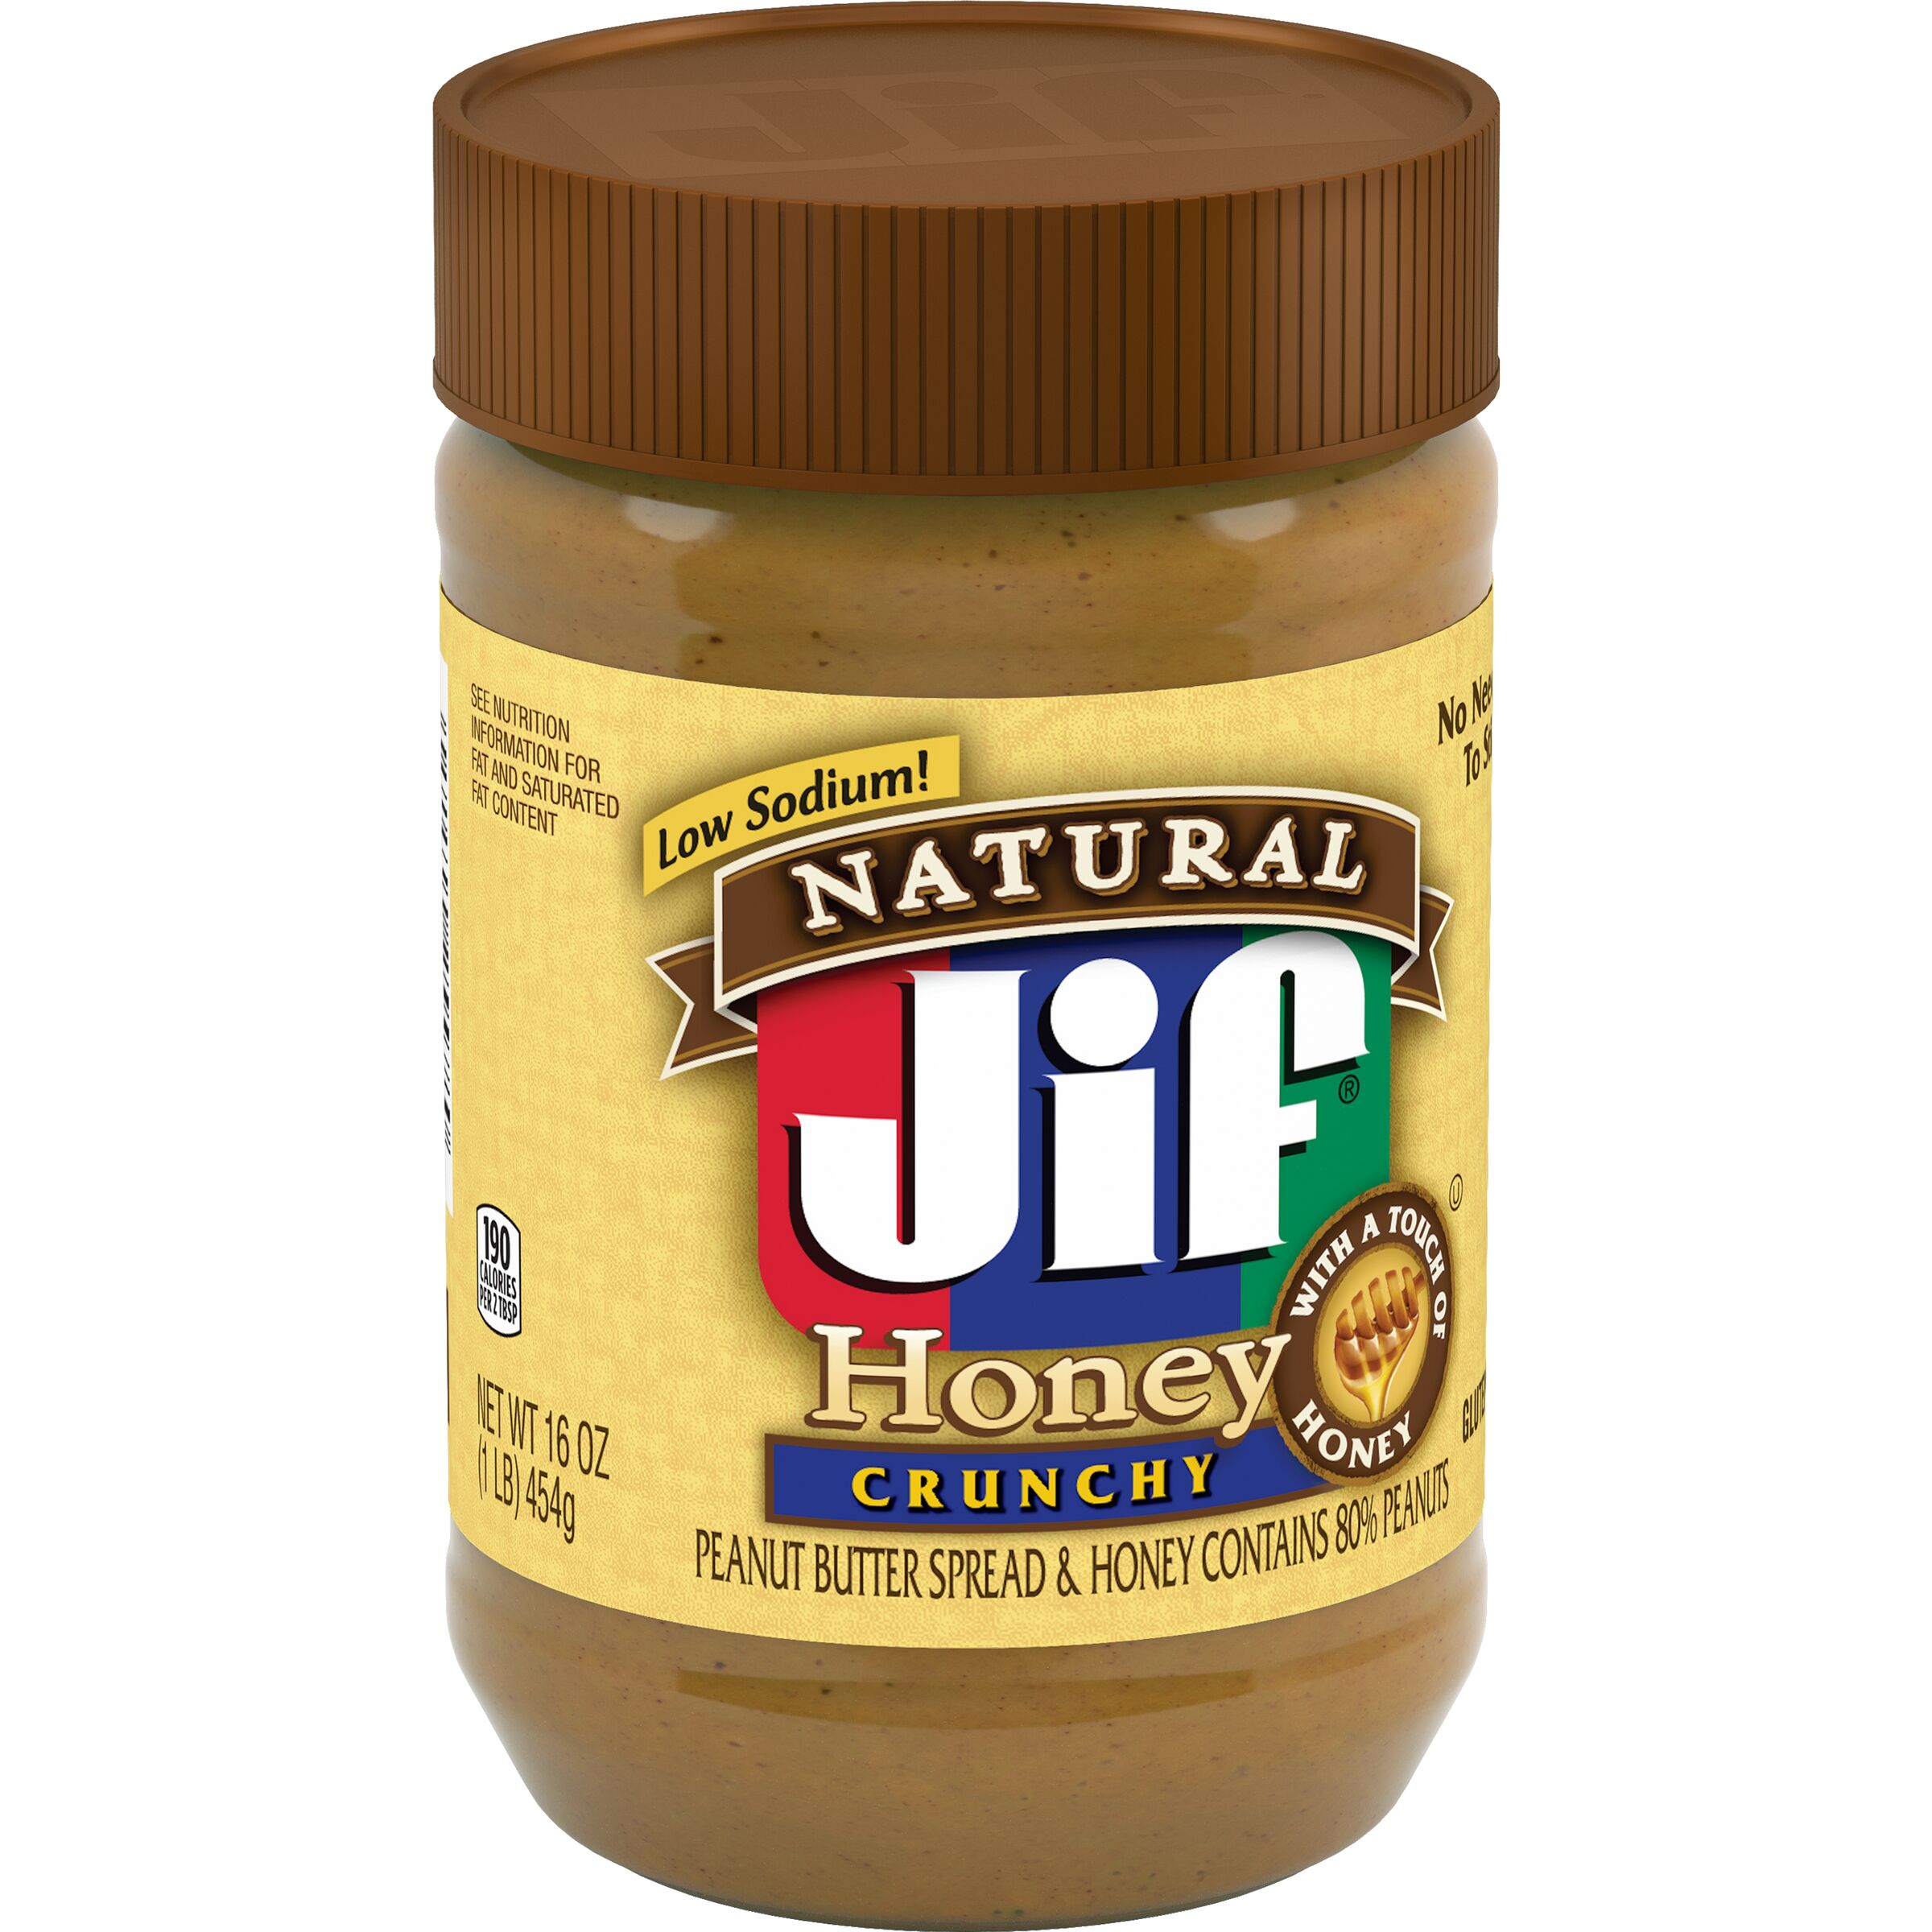 Jif Natural Crunchy Peanut Butter Spread & Honey Contains 80% Peanuts